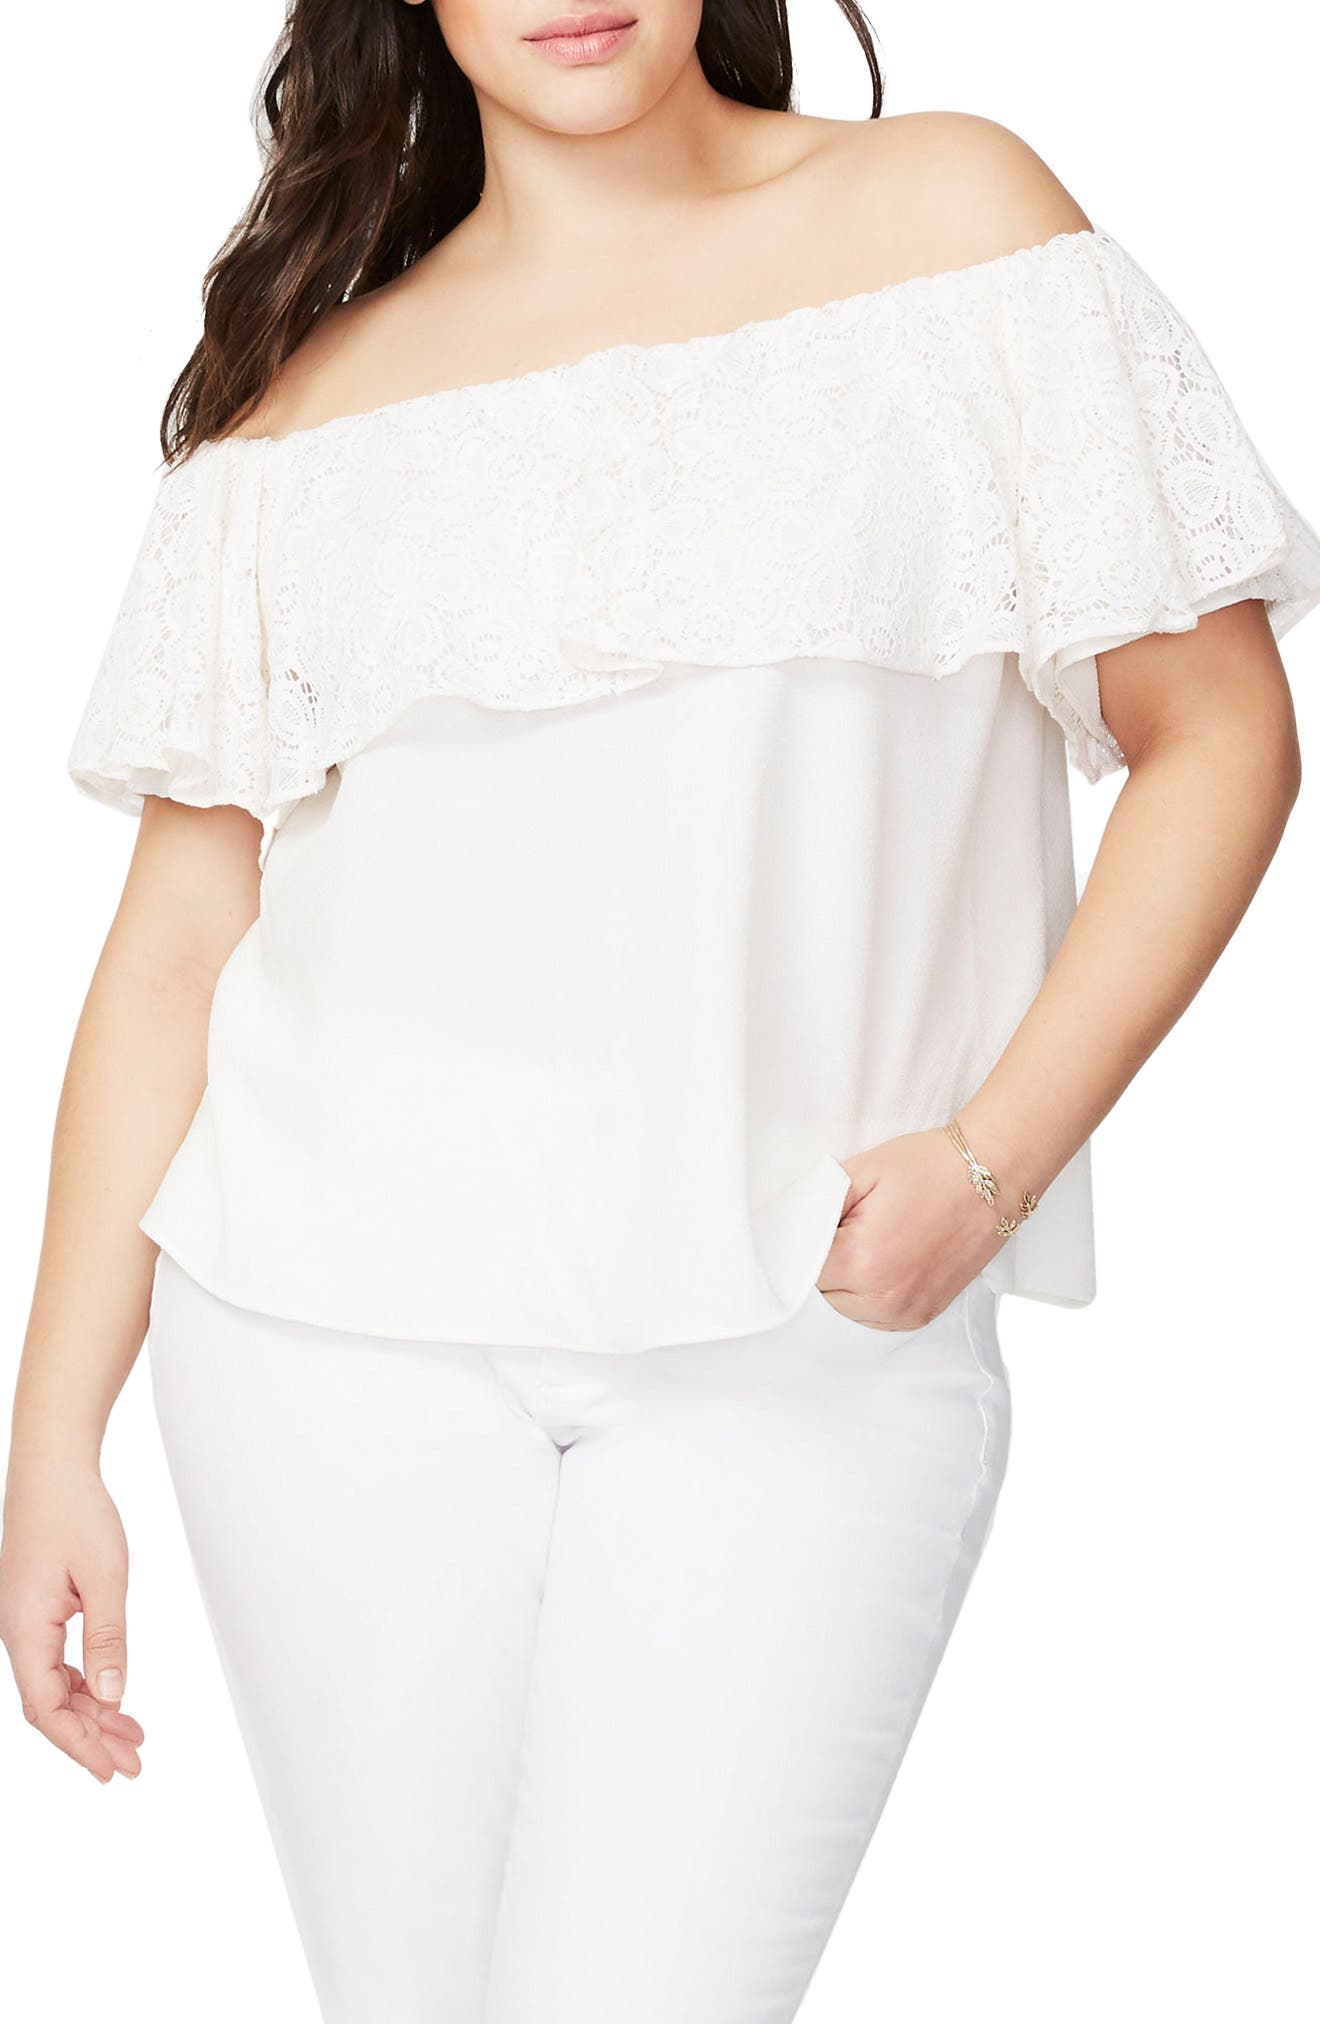 RACHEL Rachel Roy Lace Ruffle Off the Shoulder Top,                             Main thumbnail 2, color,